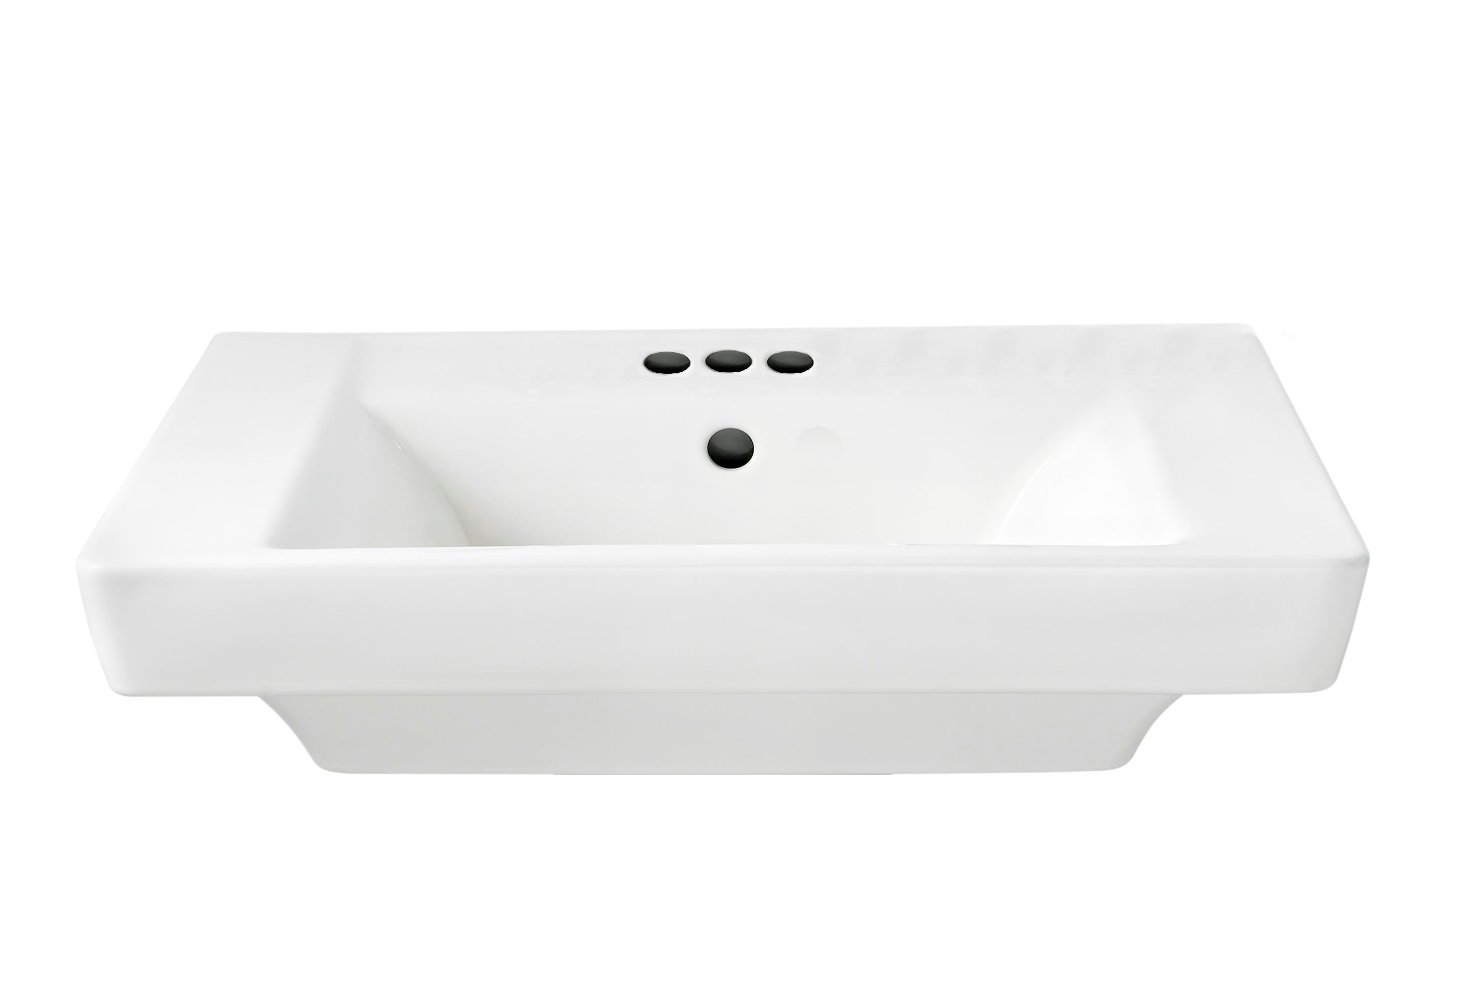 American Standard 0641.004.020 Boulevard 4-Inch Center Faucet Holes Pedestal Basin, White